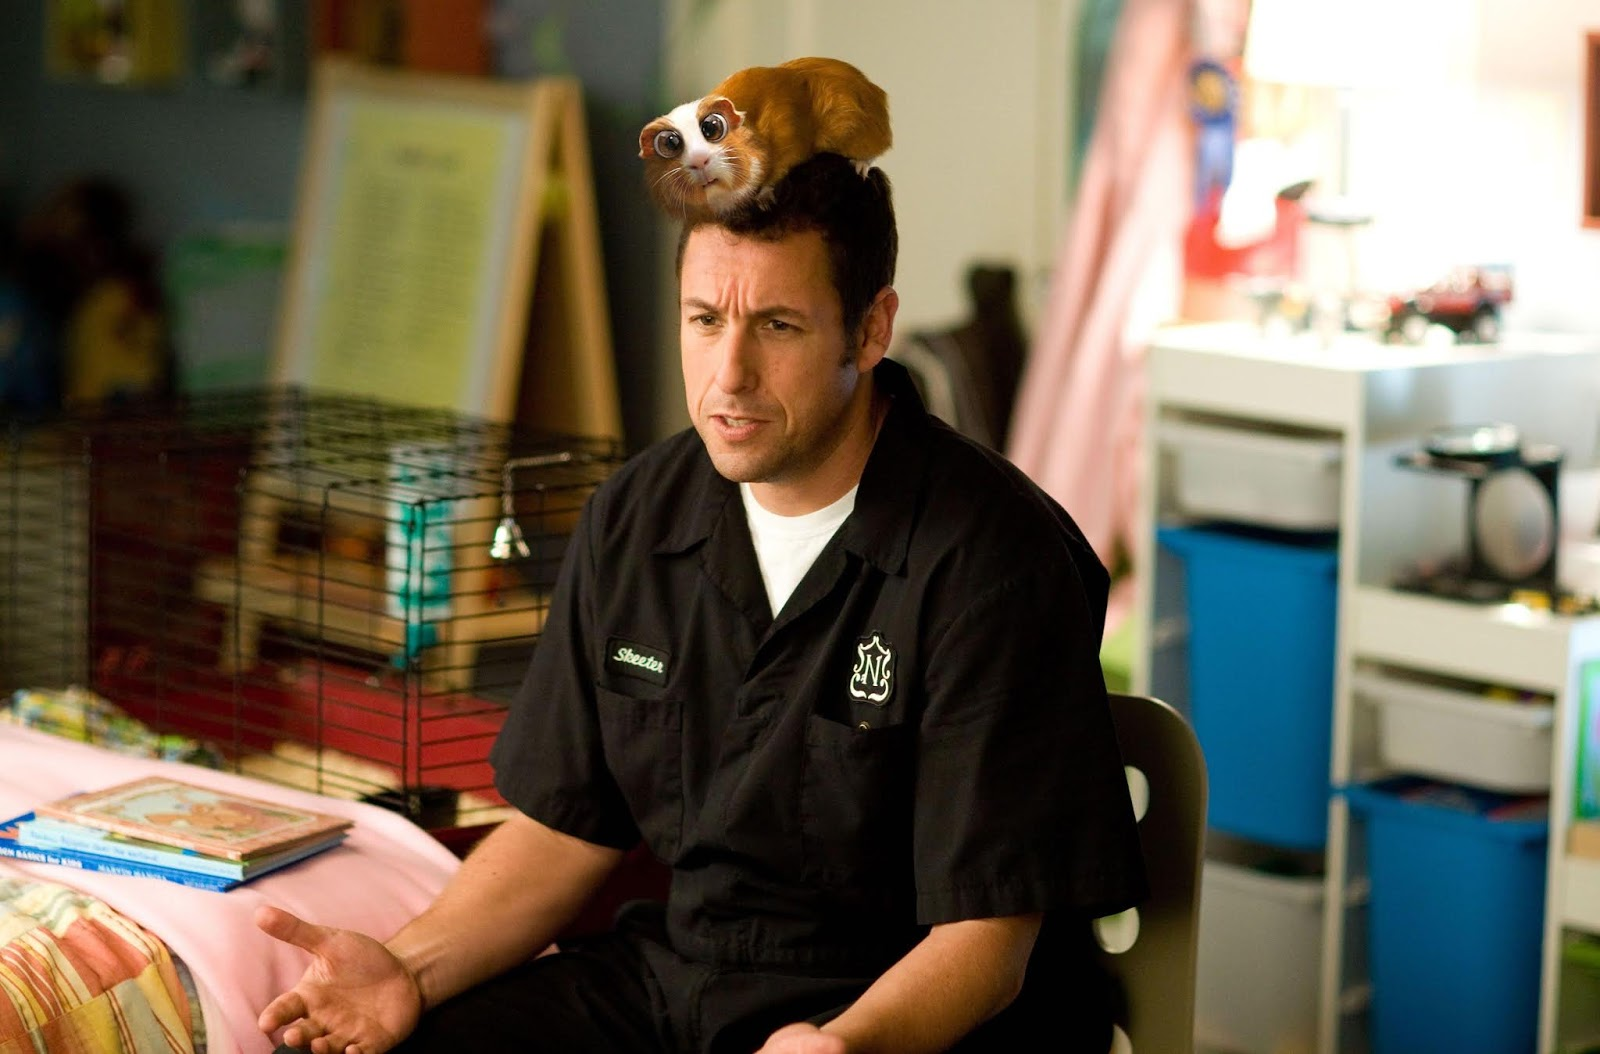 Adam Sandler Wallpapers Image Photos Pictures Backgrounds  actors photos